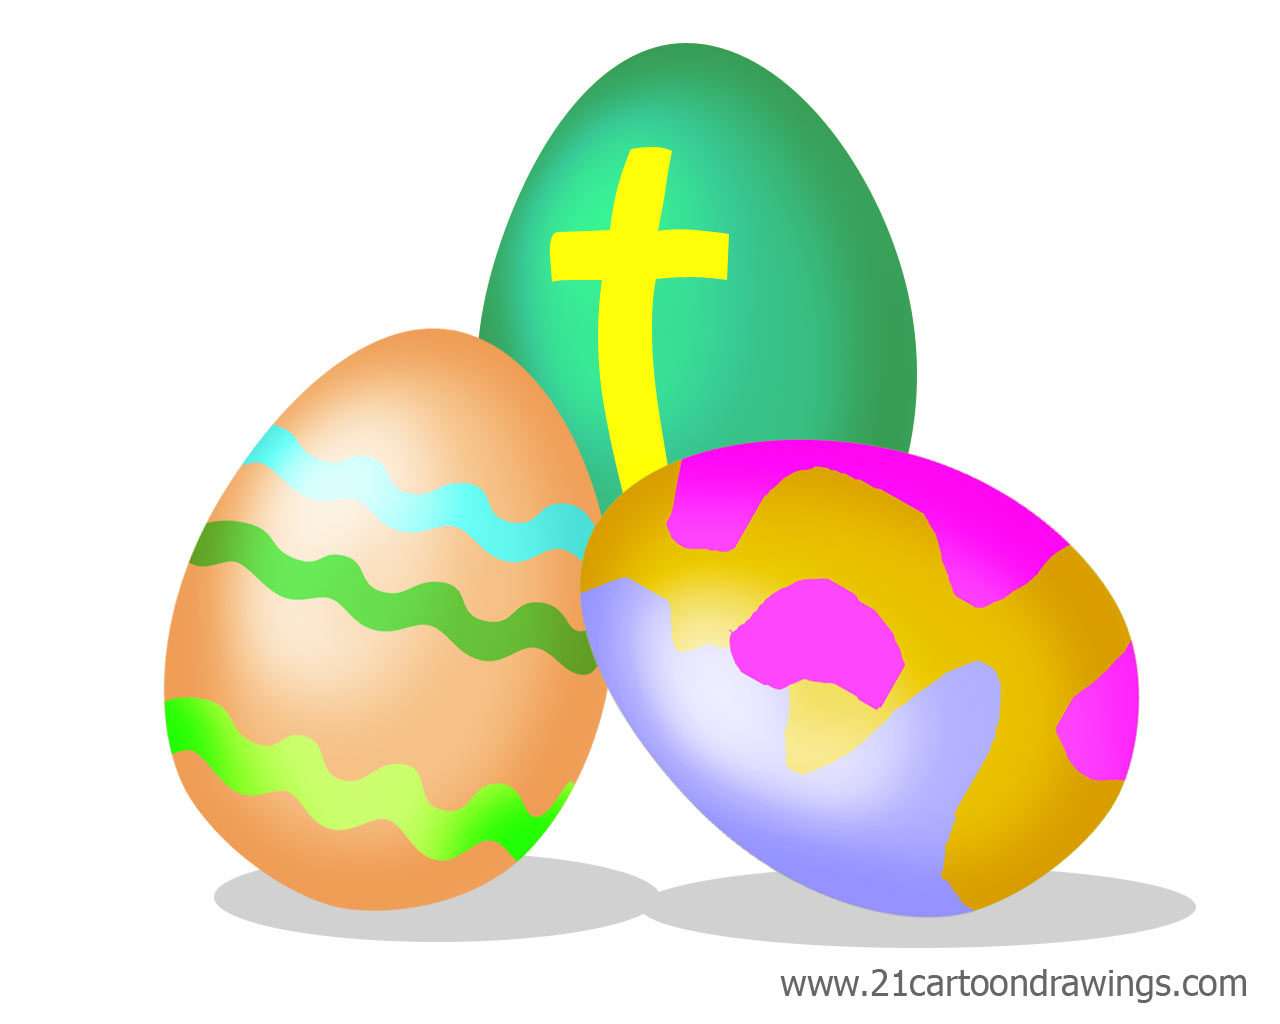 Easter egg cross clipart jpg transparent stock Easter egg cross clipart - ClipartFest jpg transparent stock